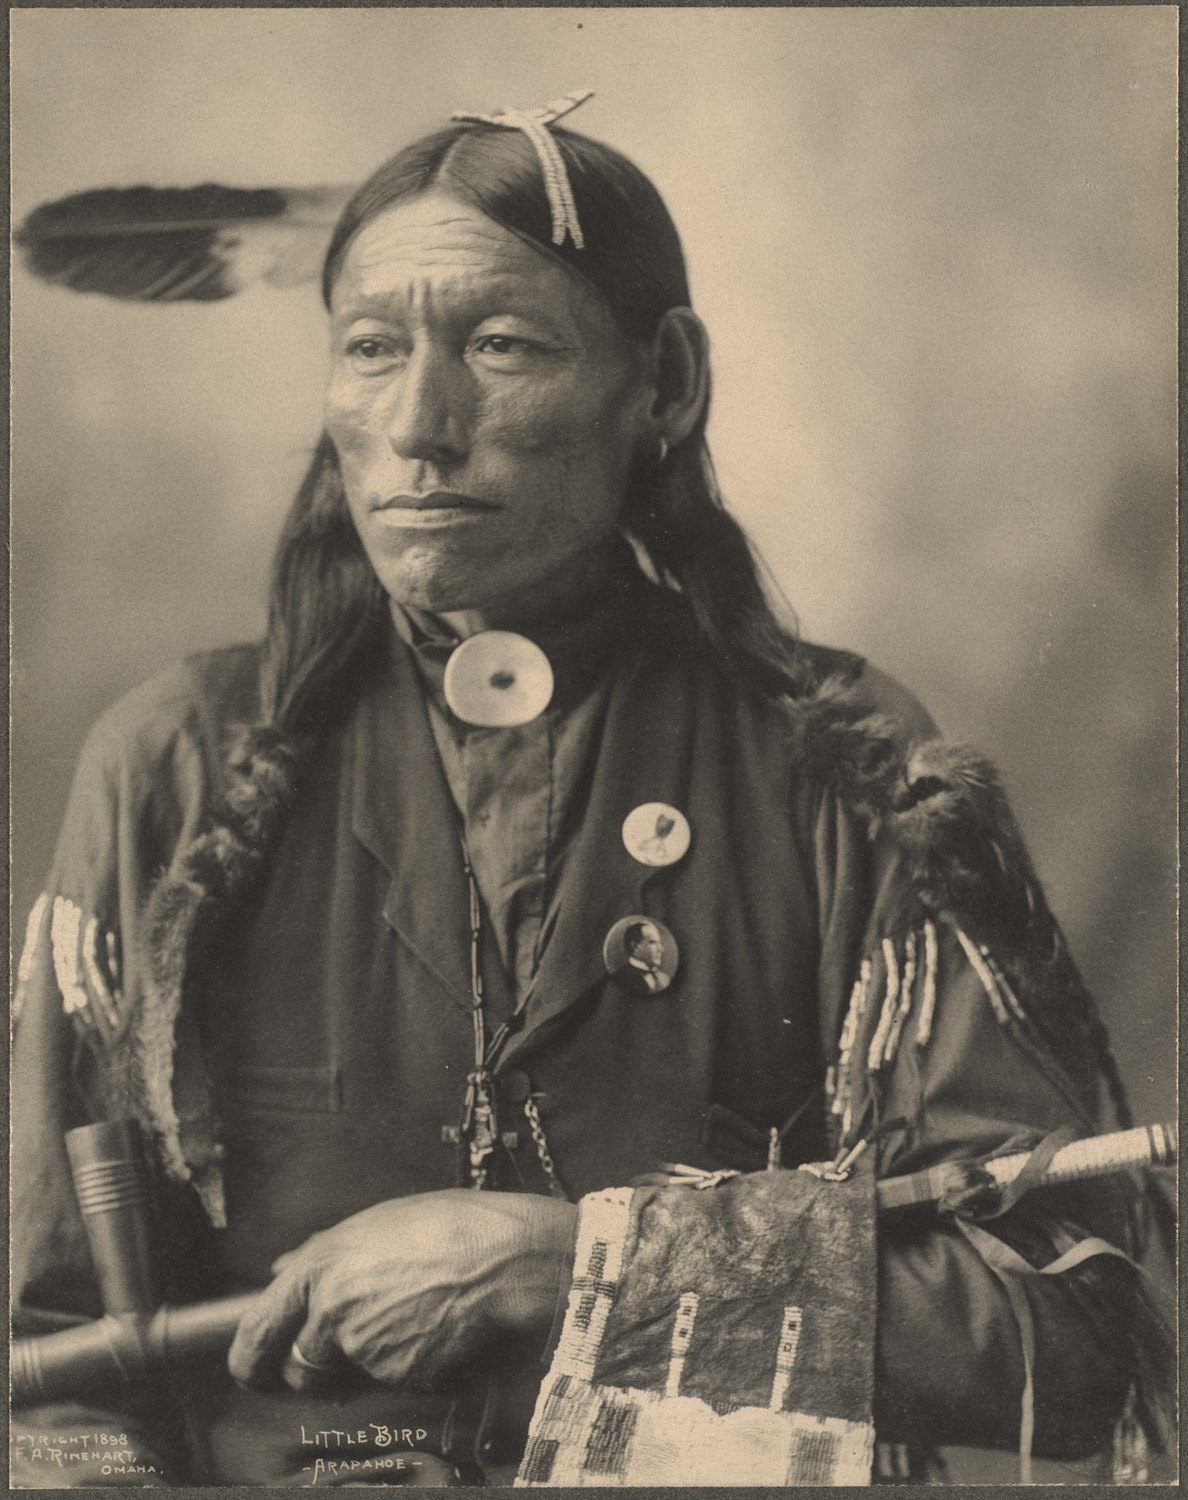 Little Bird, Arapahoe, 1899. (Photo by Frank A. Rinehart)